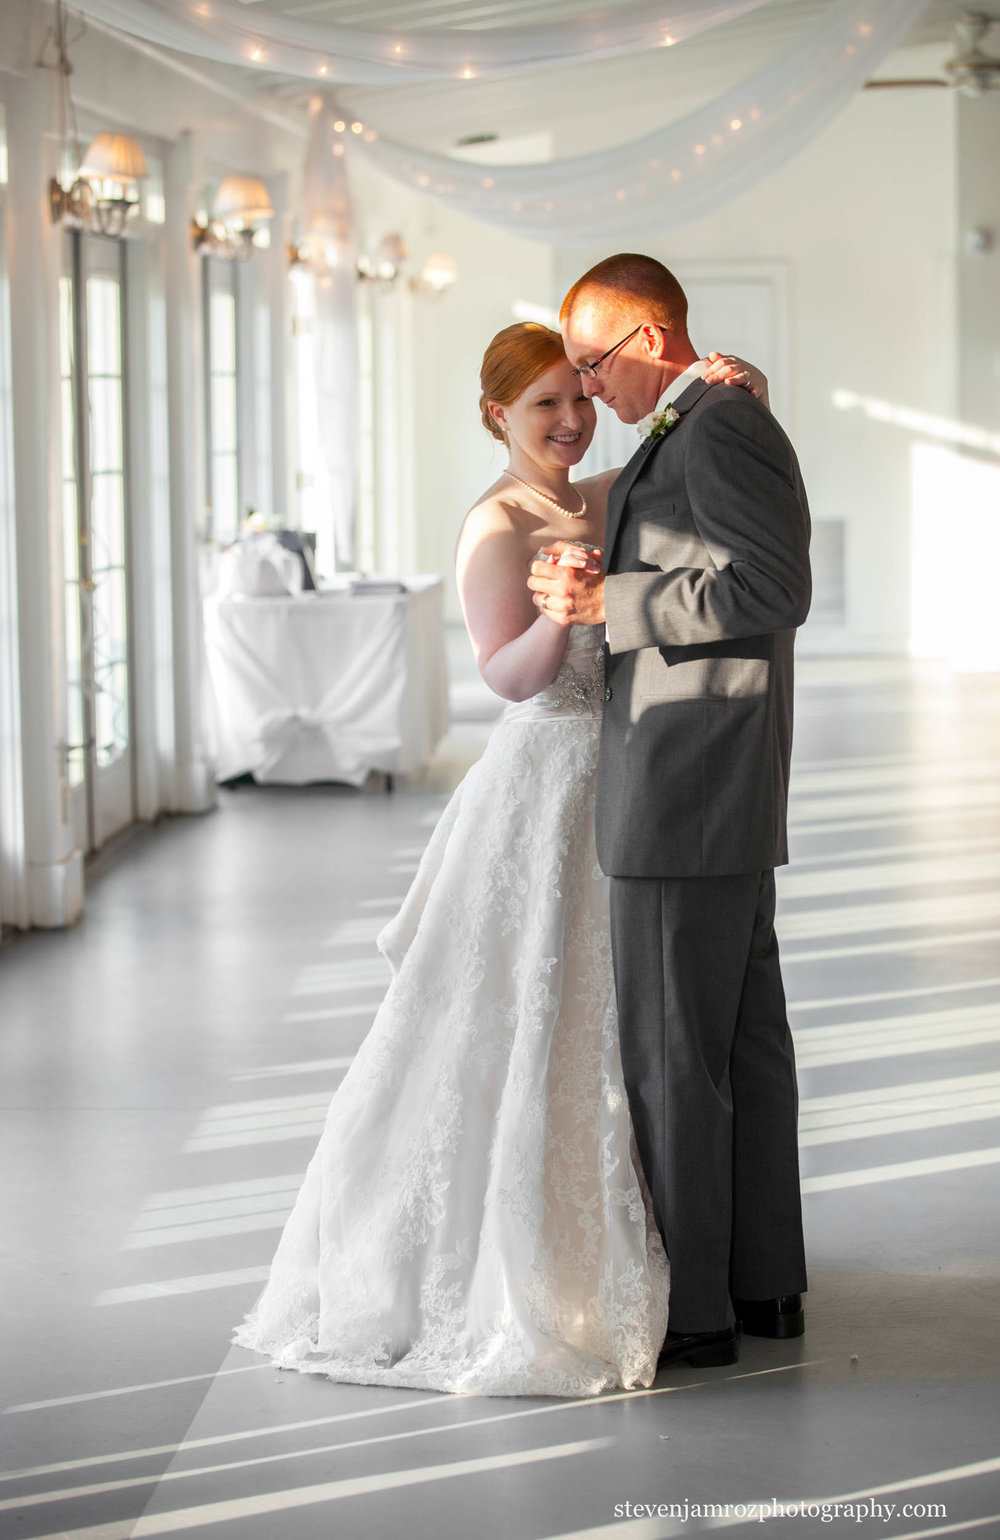 together-bride-groom-first-dance-birkdale-golf-club-nc-steven-jamroz-photography-0490.jpg